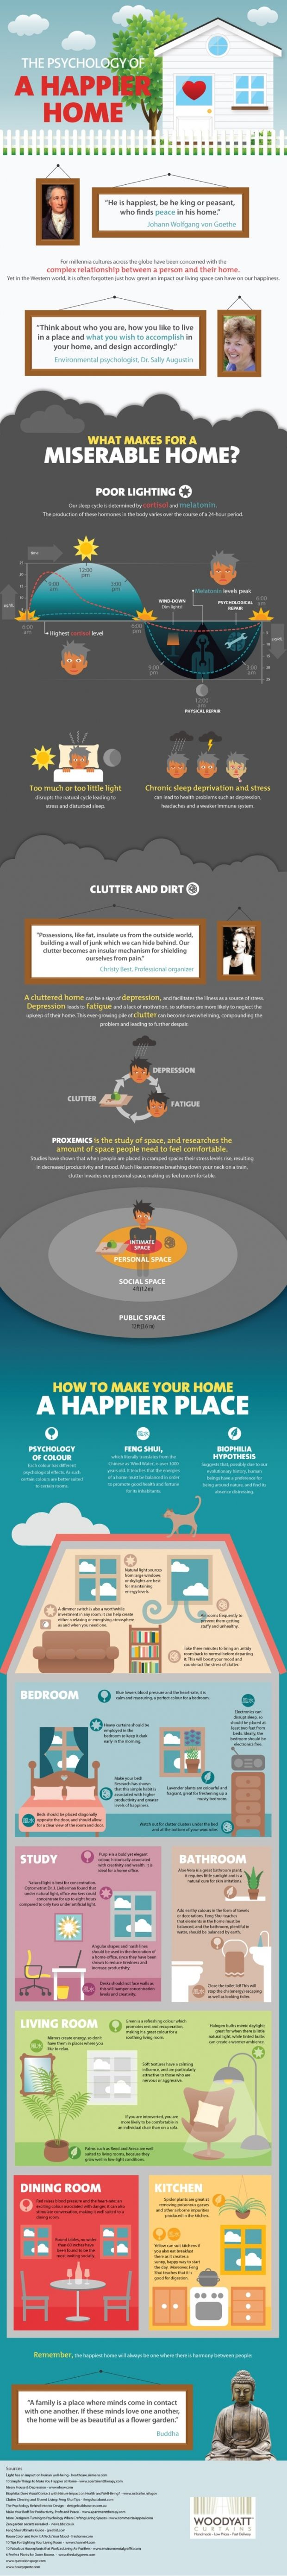 Psychology of a Happier Home | NerdGraph Infographics